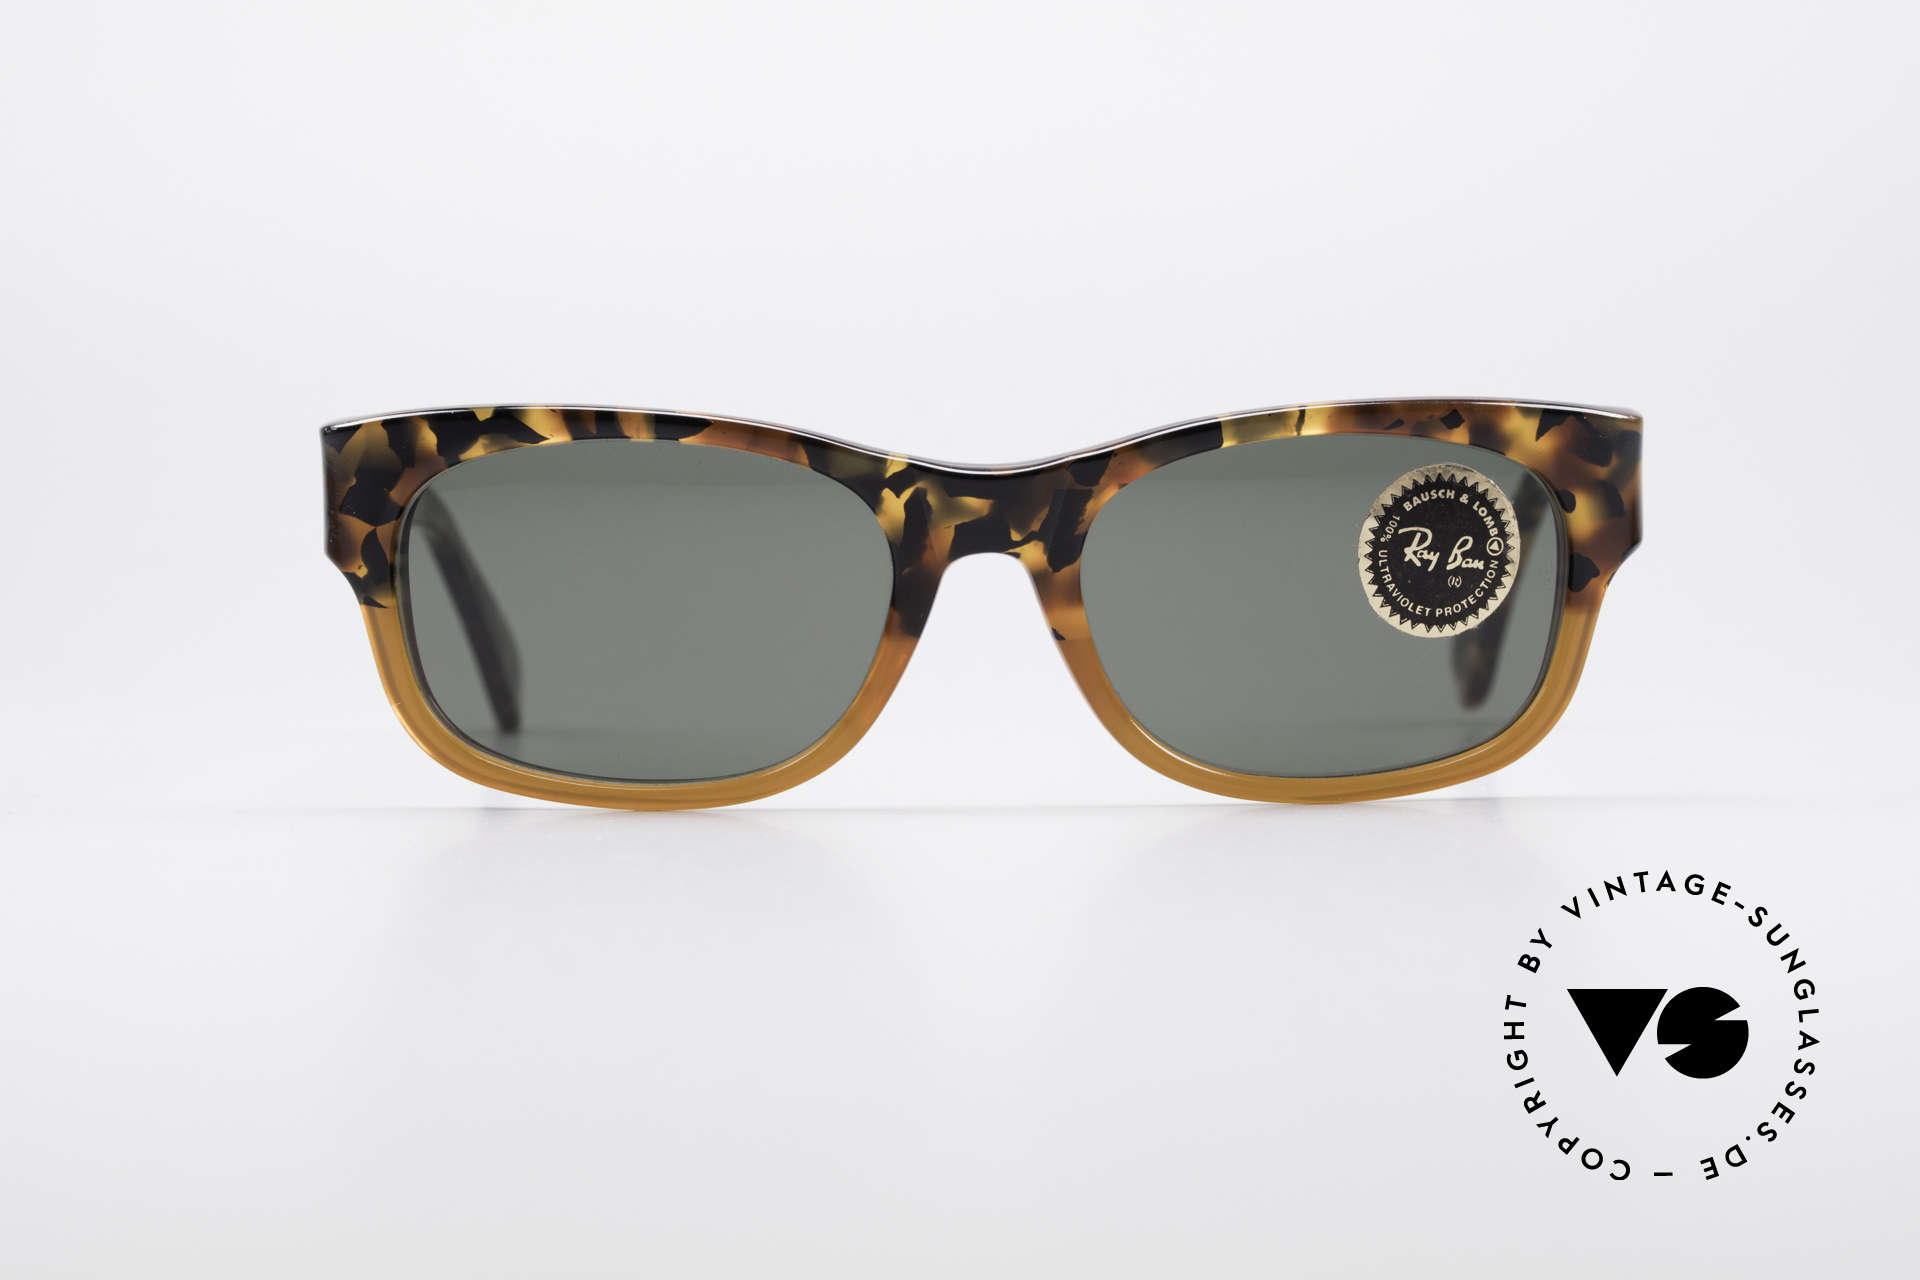 Ray Ban Bohemian Bausch & Lomb USA Glasses, Bausch & Lomb G-15 quality lenses (100% UV), Made for Men and Women